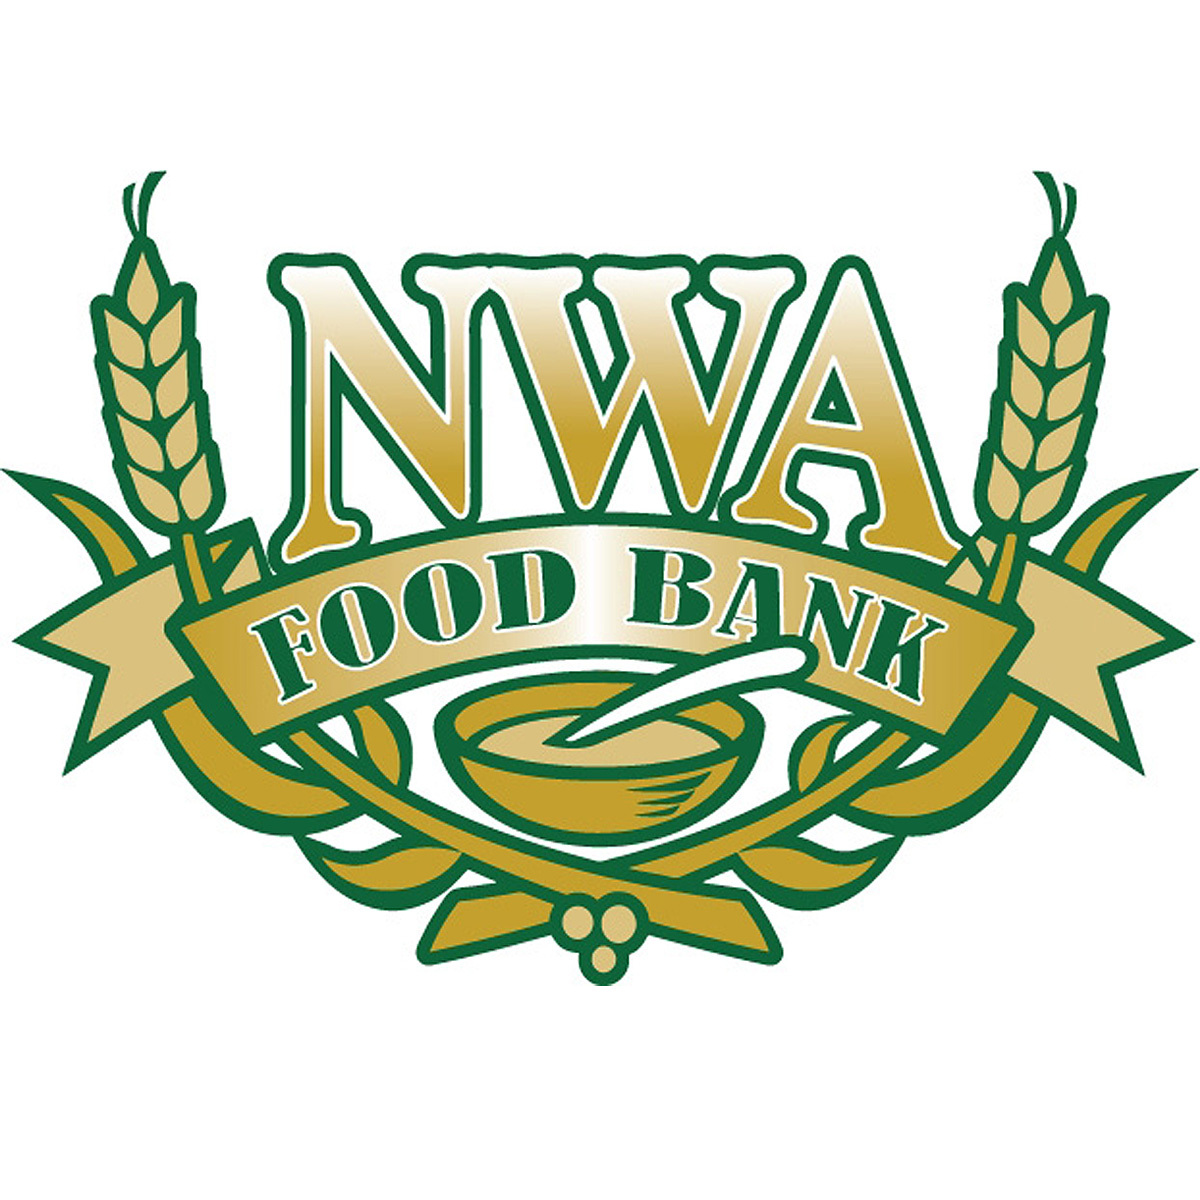 The Northwest Arkansas Food Bank